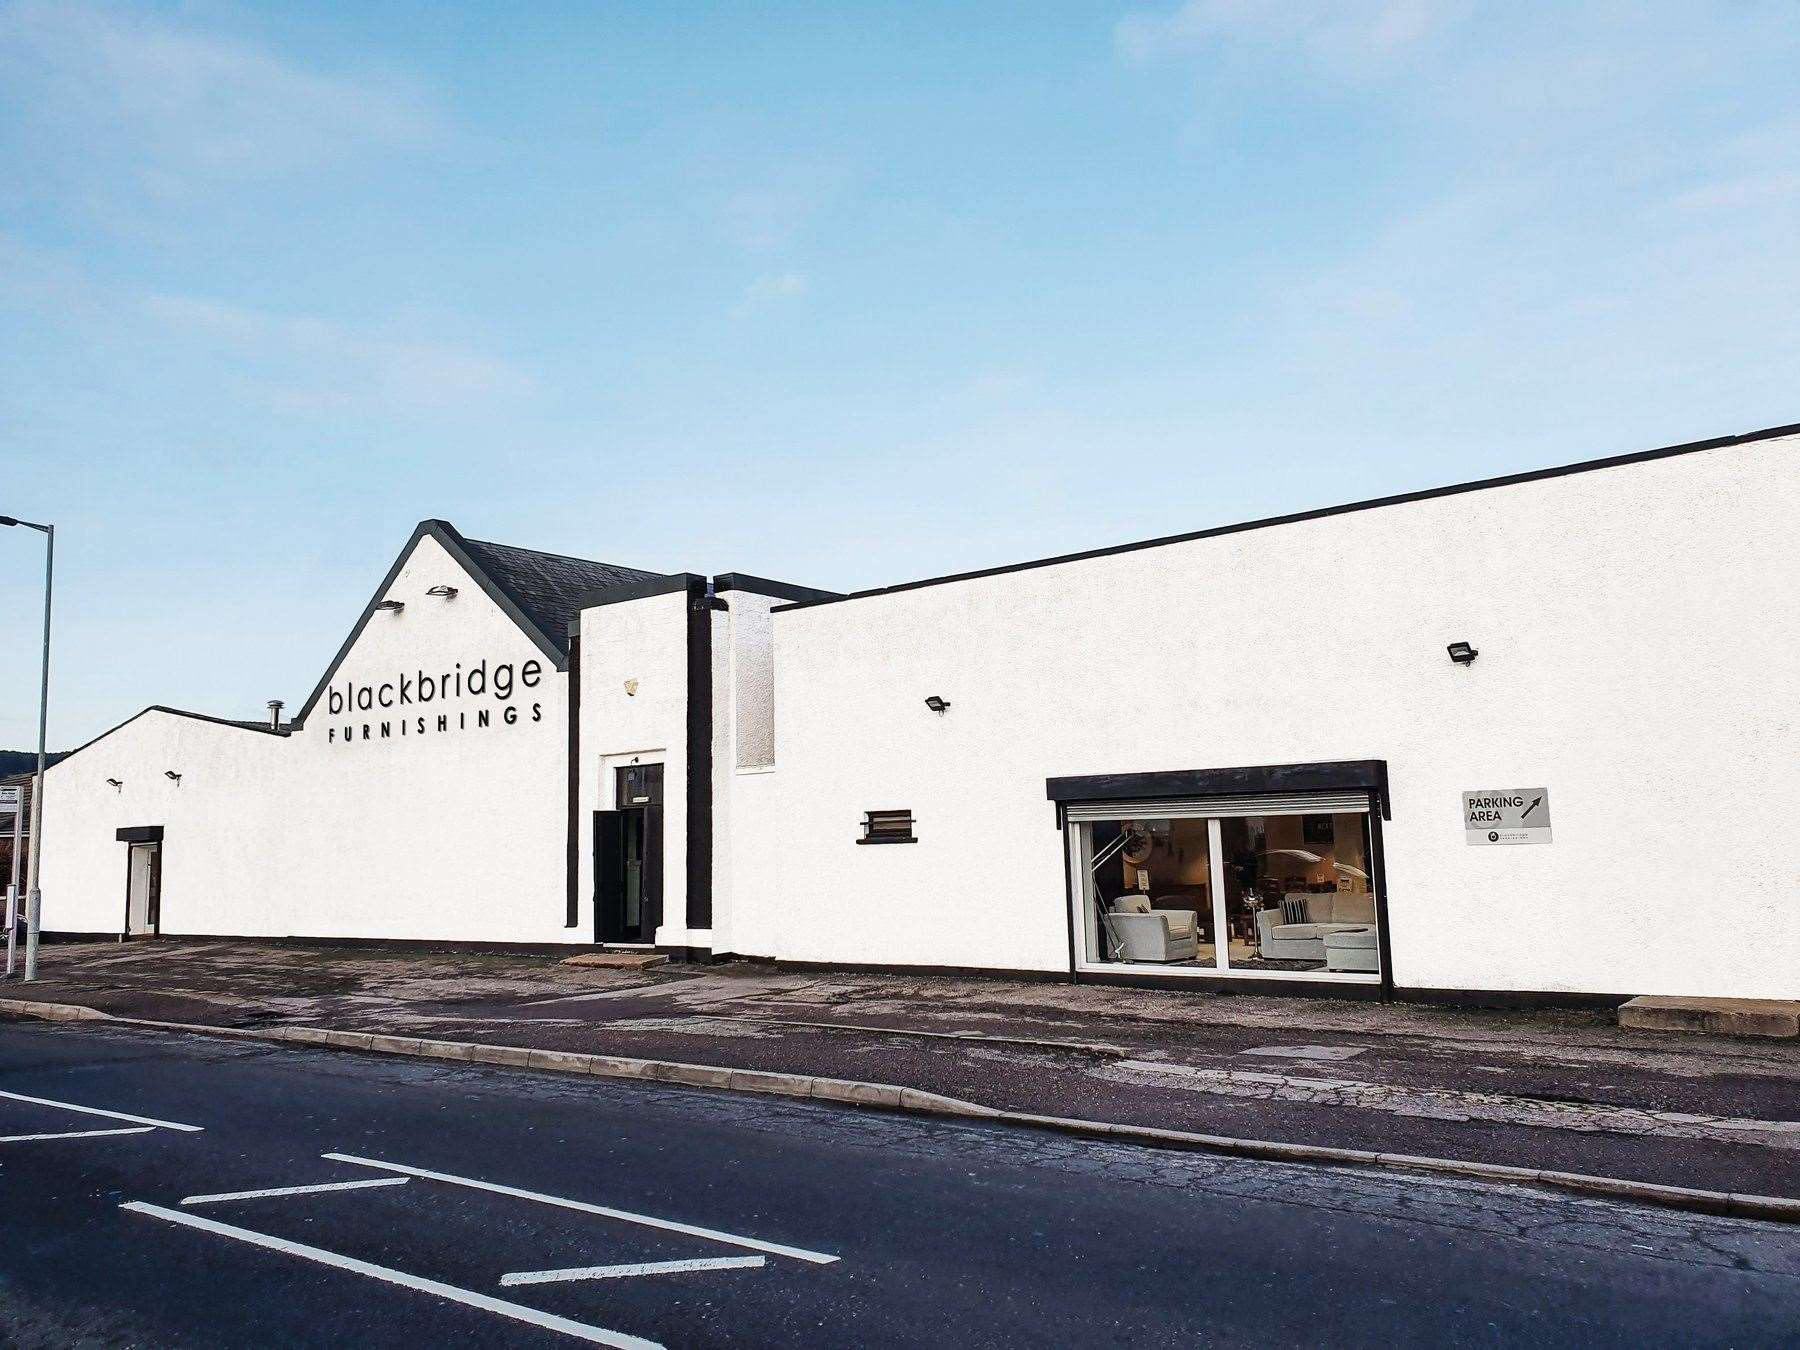 Blackbridge Furnishings in Inverness.